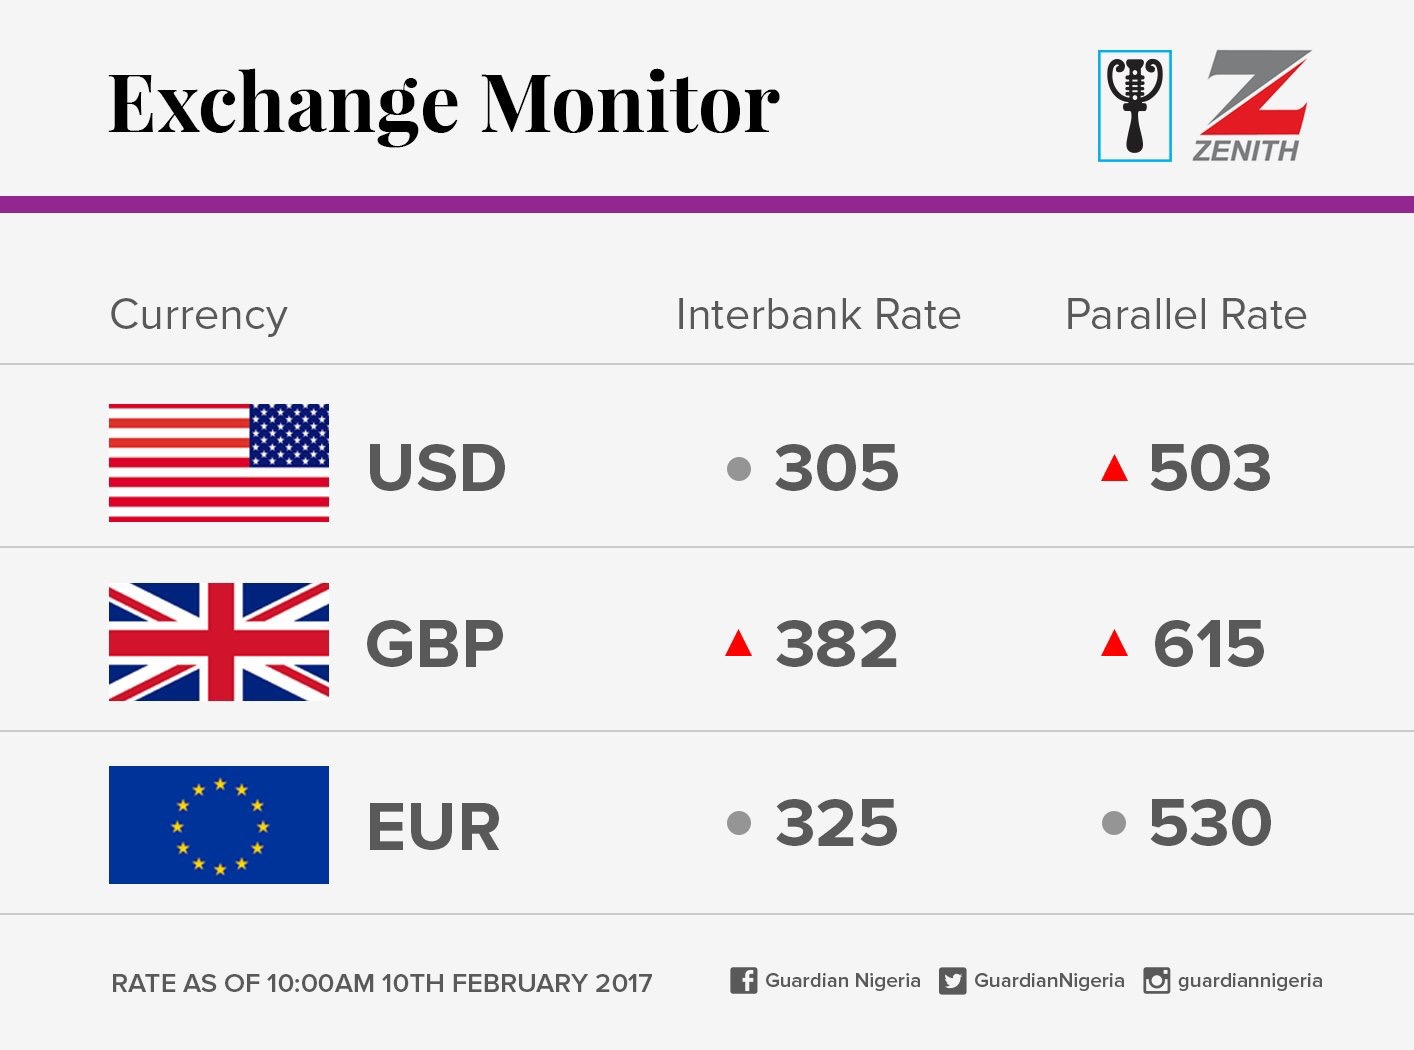 Exchange Rate For 10th February 2017